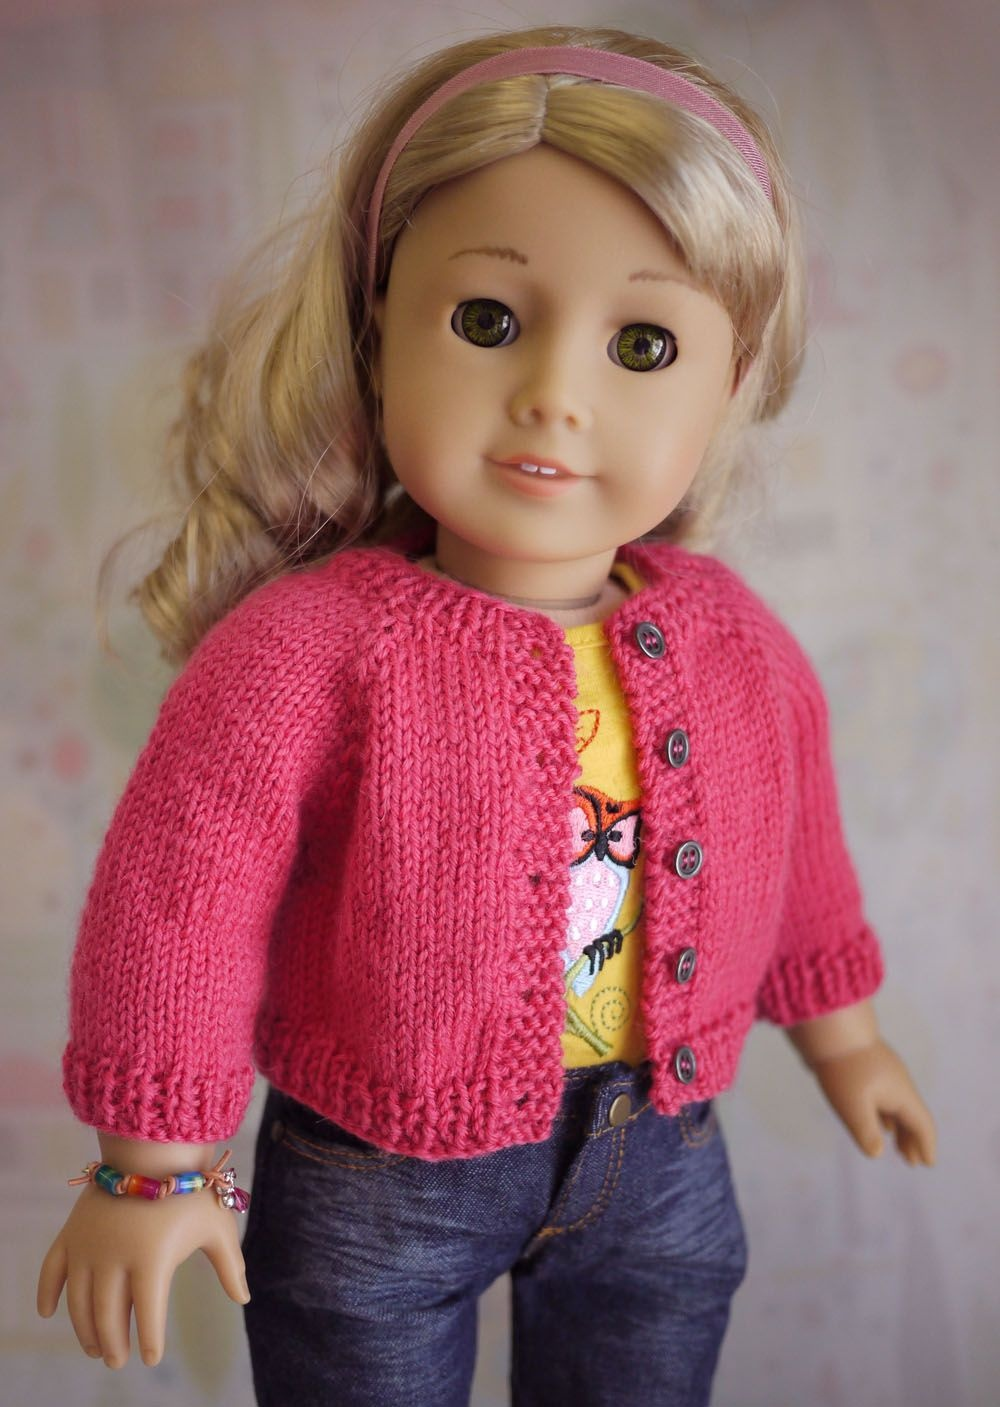 Free Patterns | Crafts: Dolls | Doll Clothes Patterns, Knitted Doll - Free Printable Crochet Doll Clothes Patterns For 18 Inch Dolls